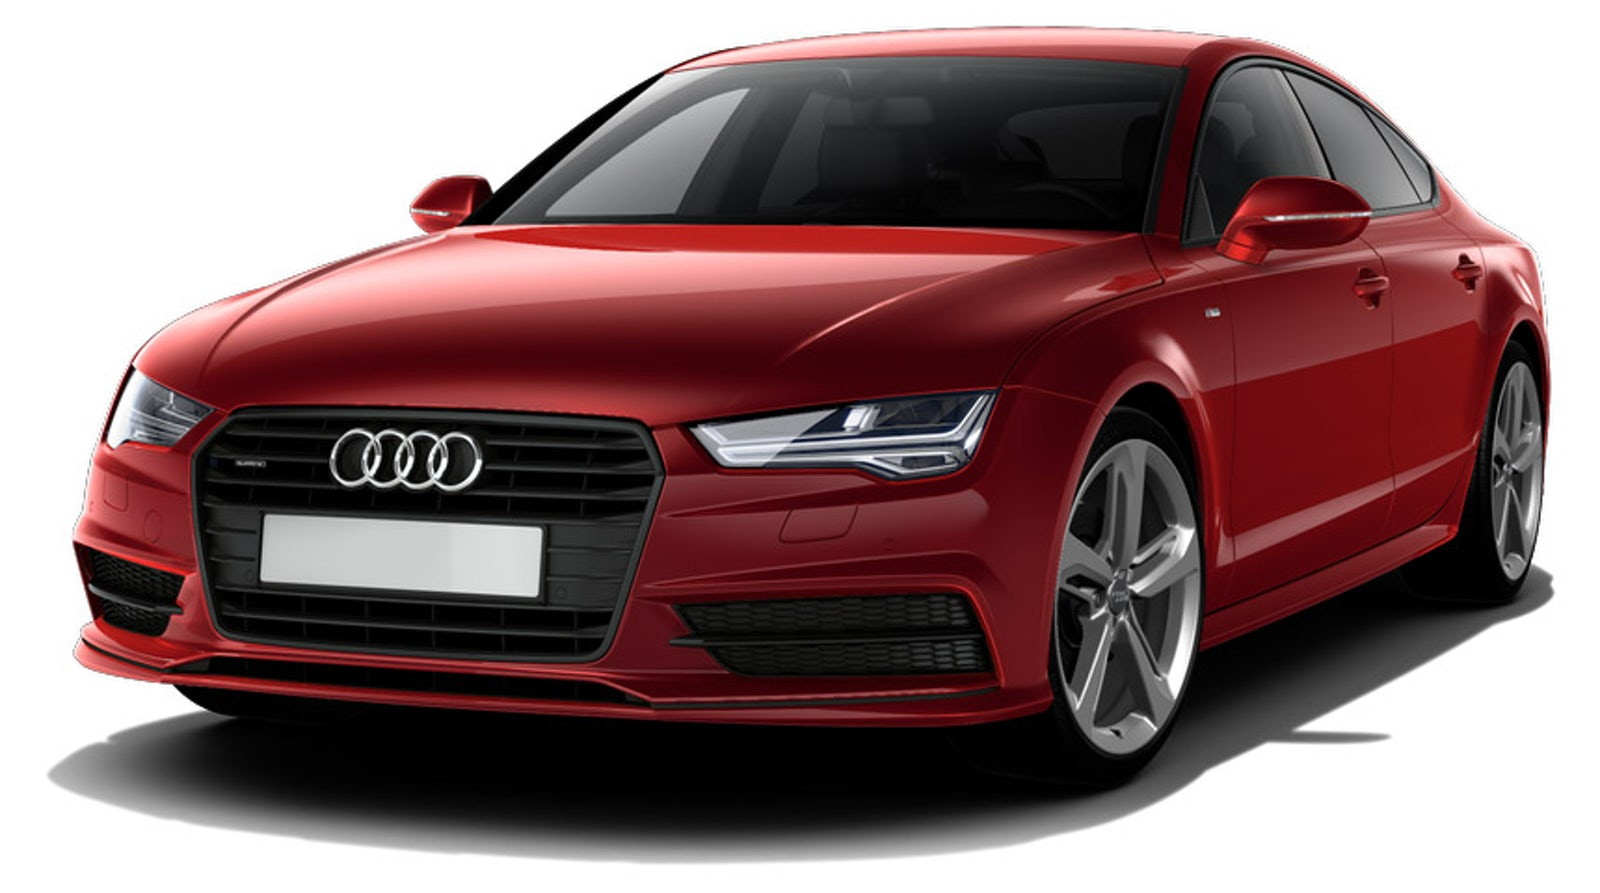 What colour car not to buy - This Strong Jewel Red Is Ideal If You Want A Colourful Car With A Hint Of Subtlety It May Not Be To Everyone S Taste But Red Cars Still Tend To Sell Well